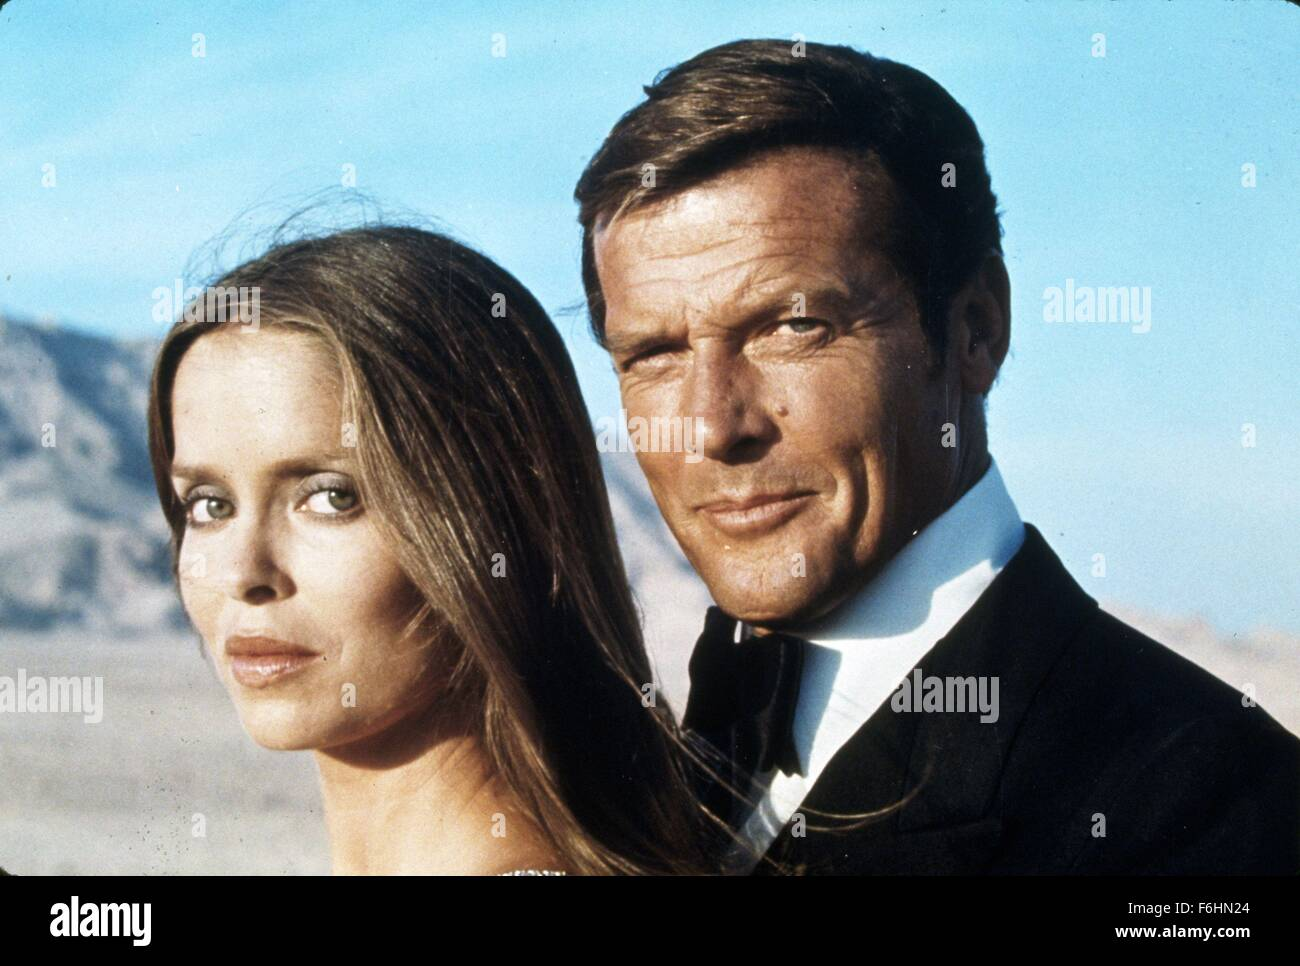 1977, Film Title: SPY WHO LOVED ME, Director: LEWIS GILBERT, Pictured: BARBARA BACH, LEWIS GILBERT, JAMES BOND. - Stock Image